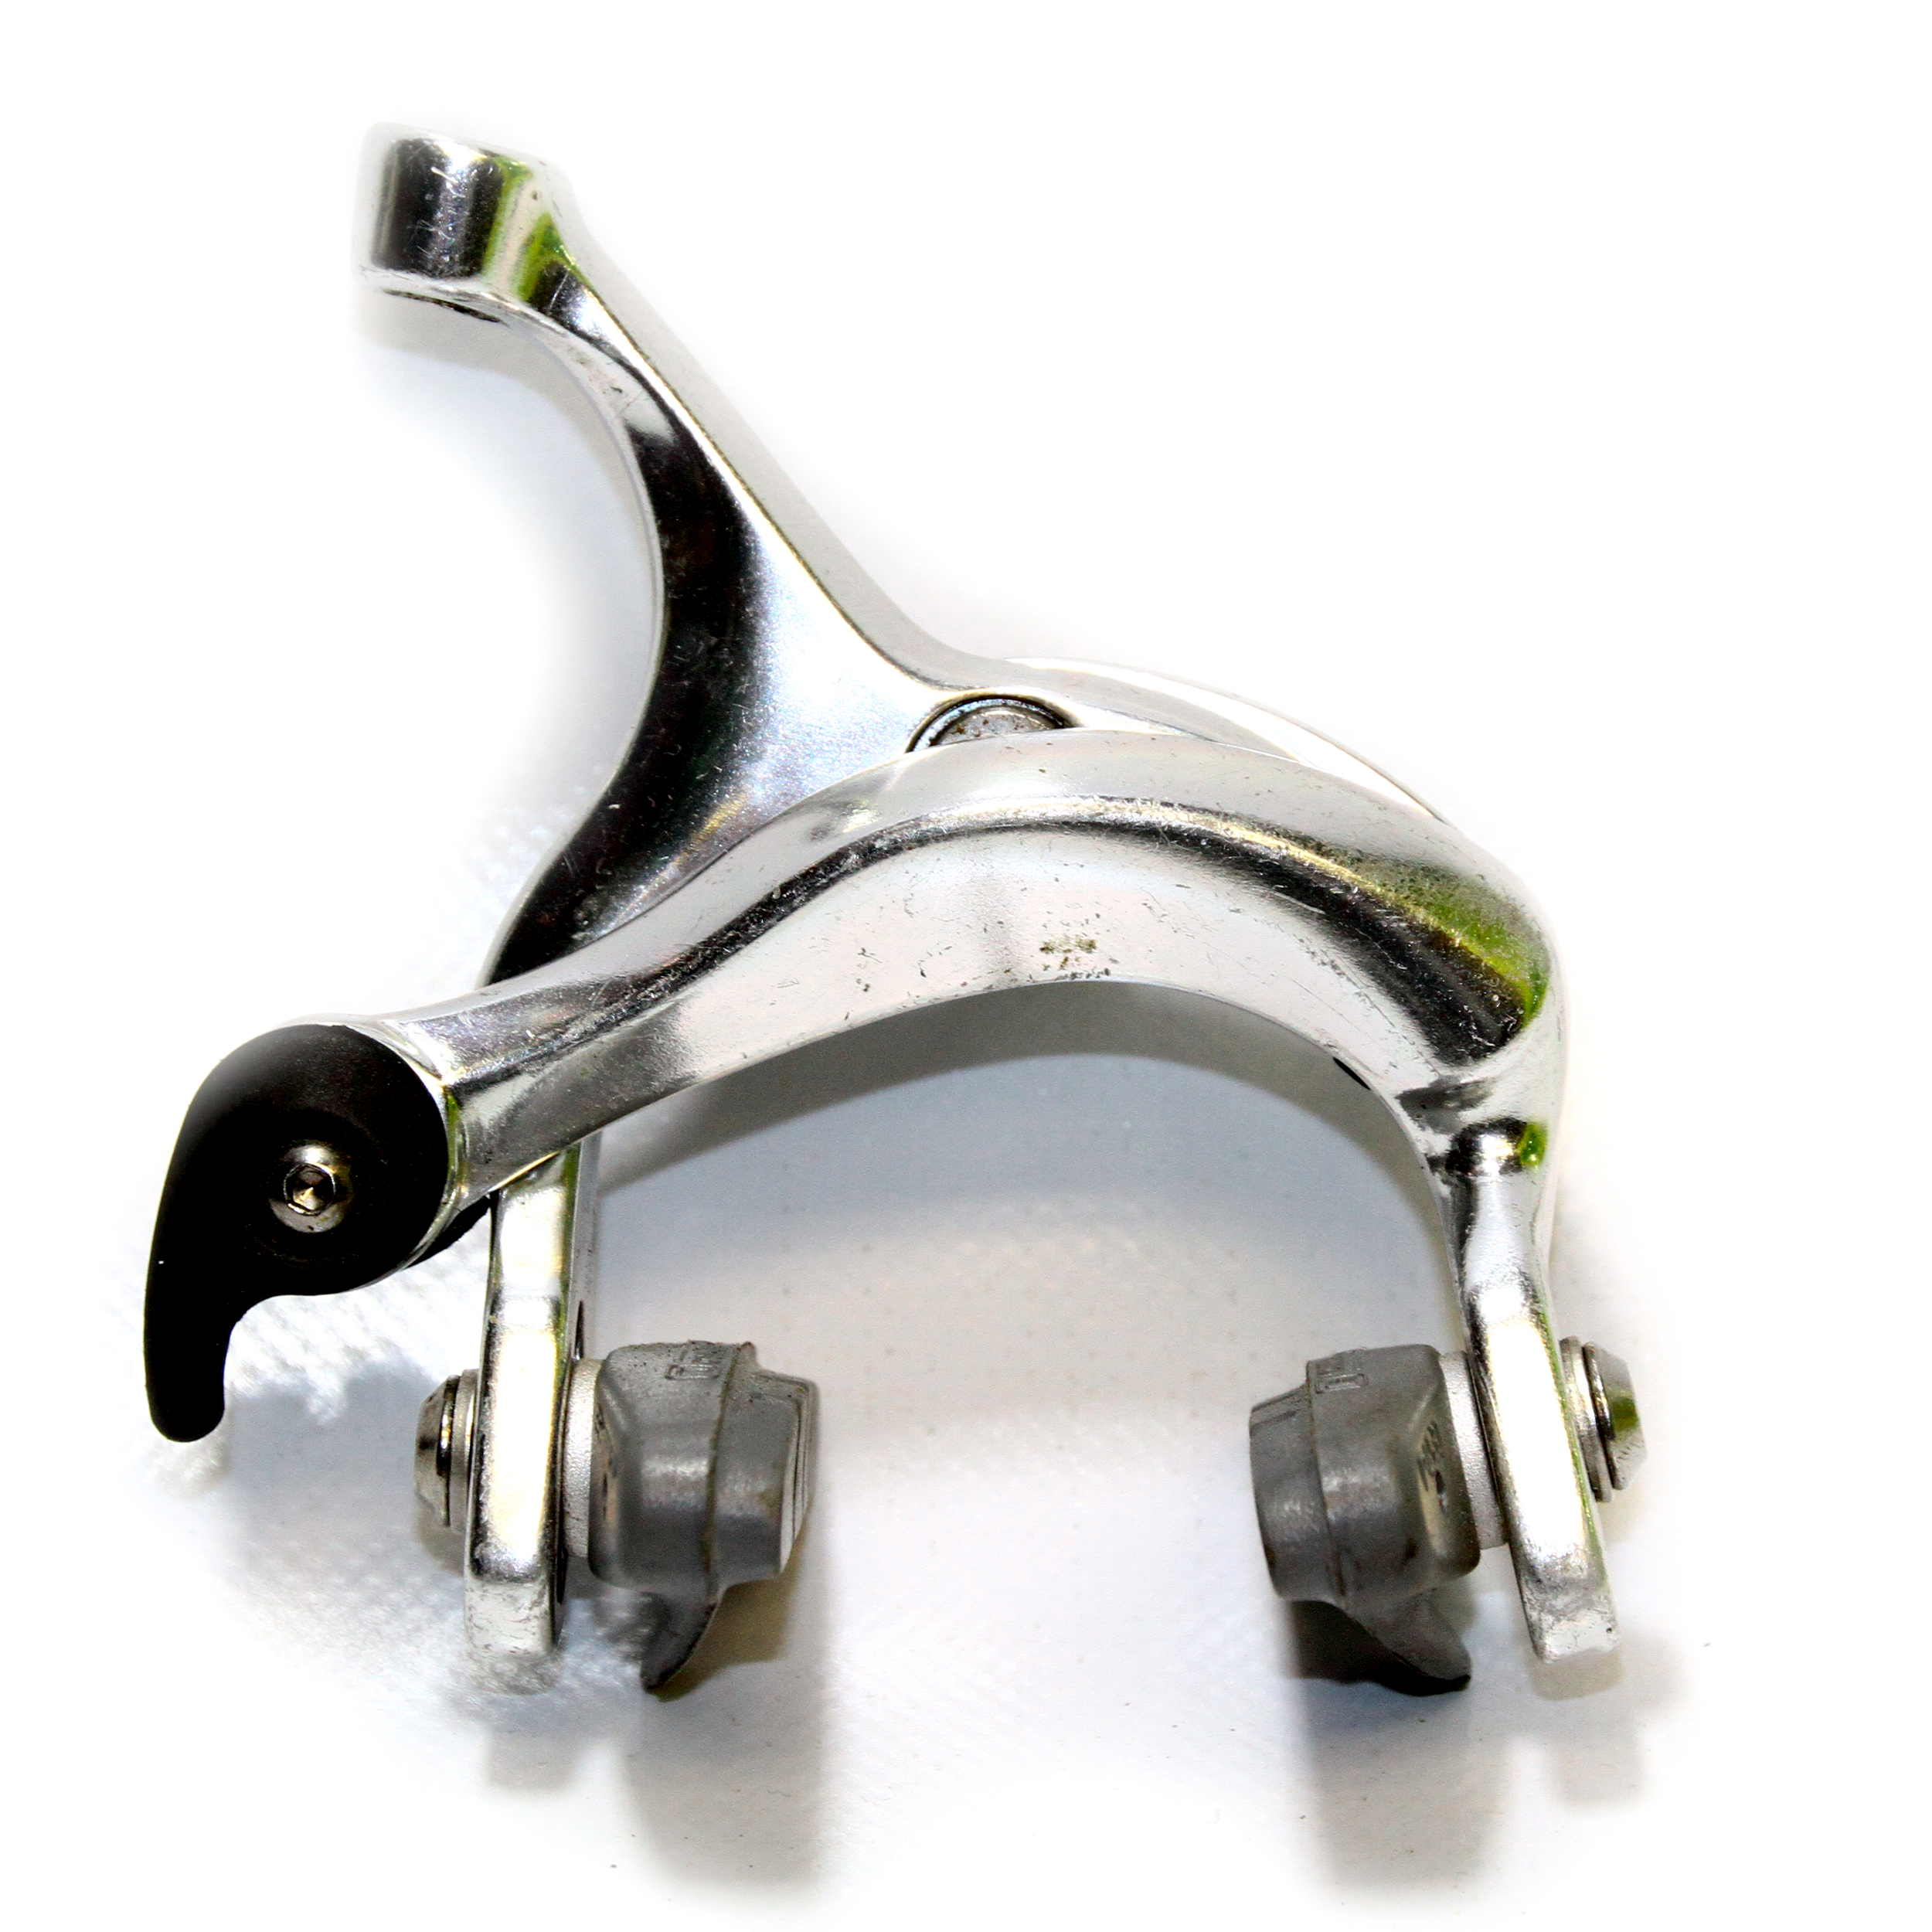 Dual Pivot Brake Calipers